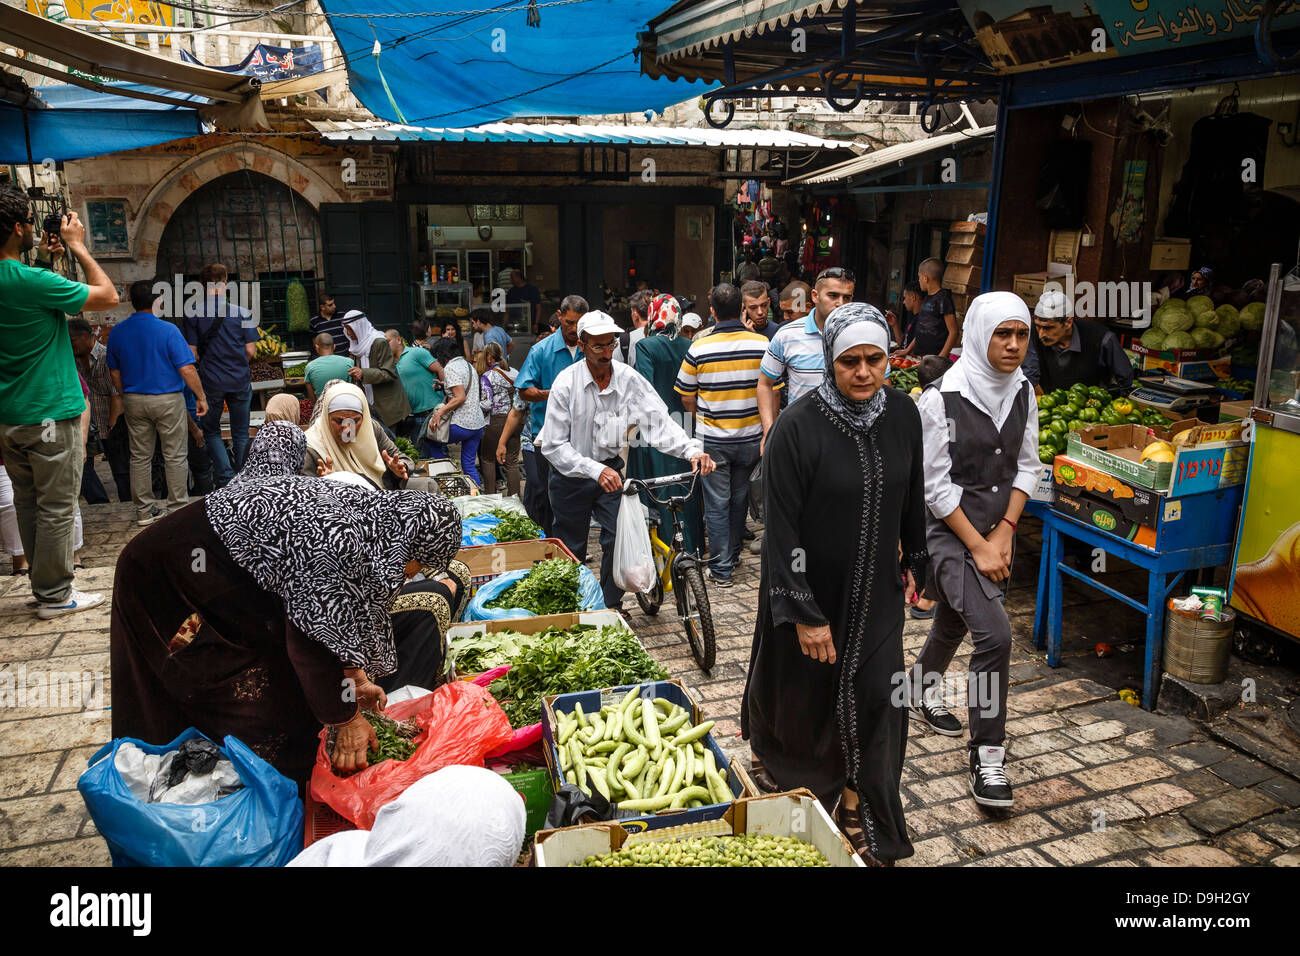 Arab souk, covered market, at the muslim quarter in old city, Jerusalem, Israel. - Stock Image